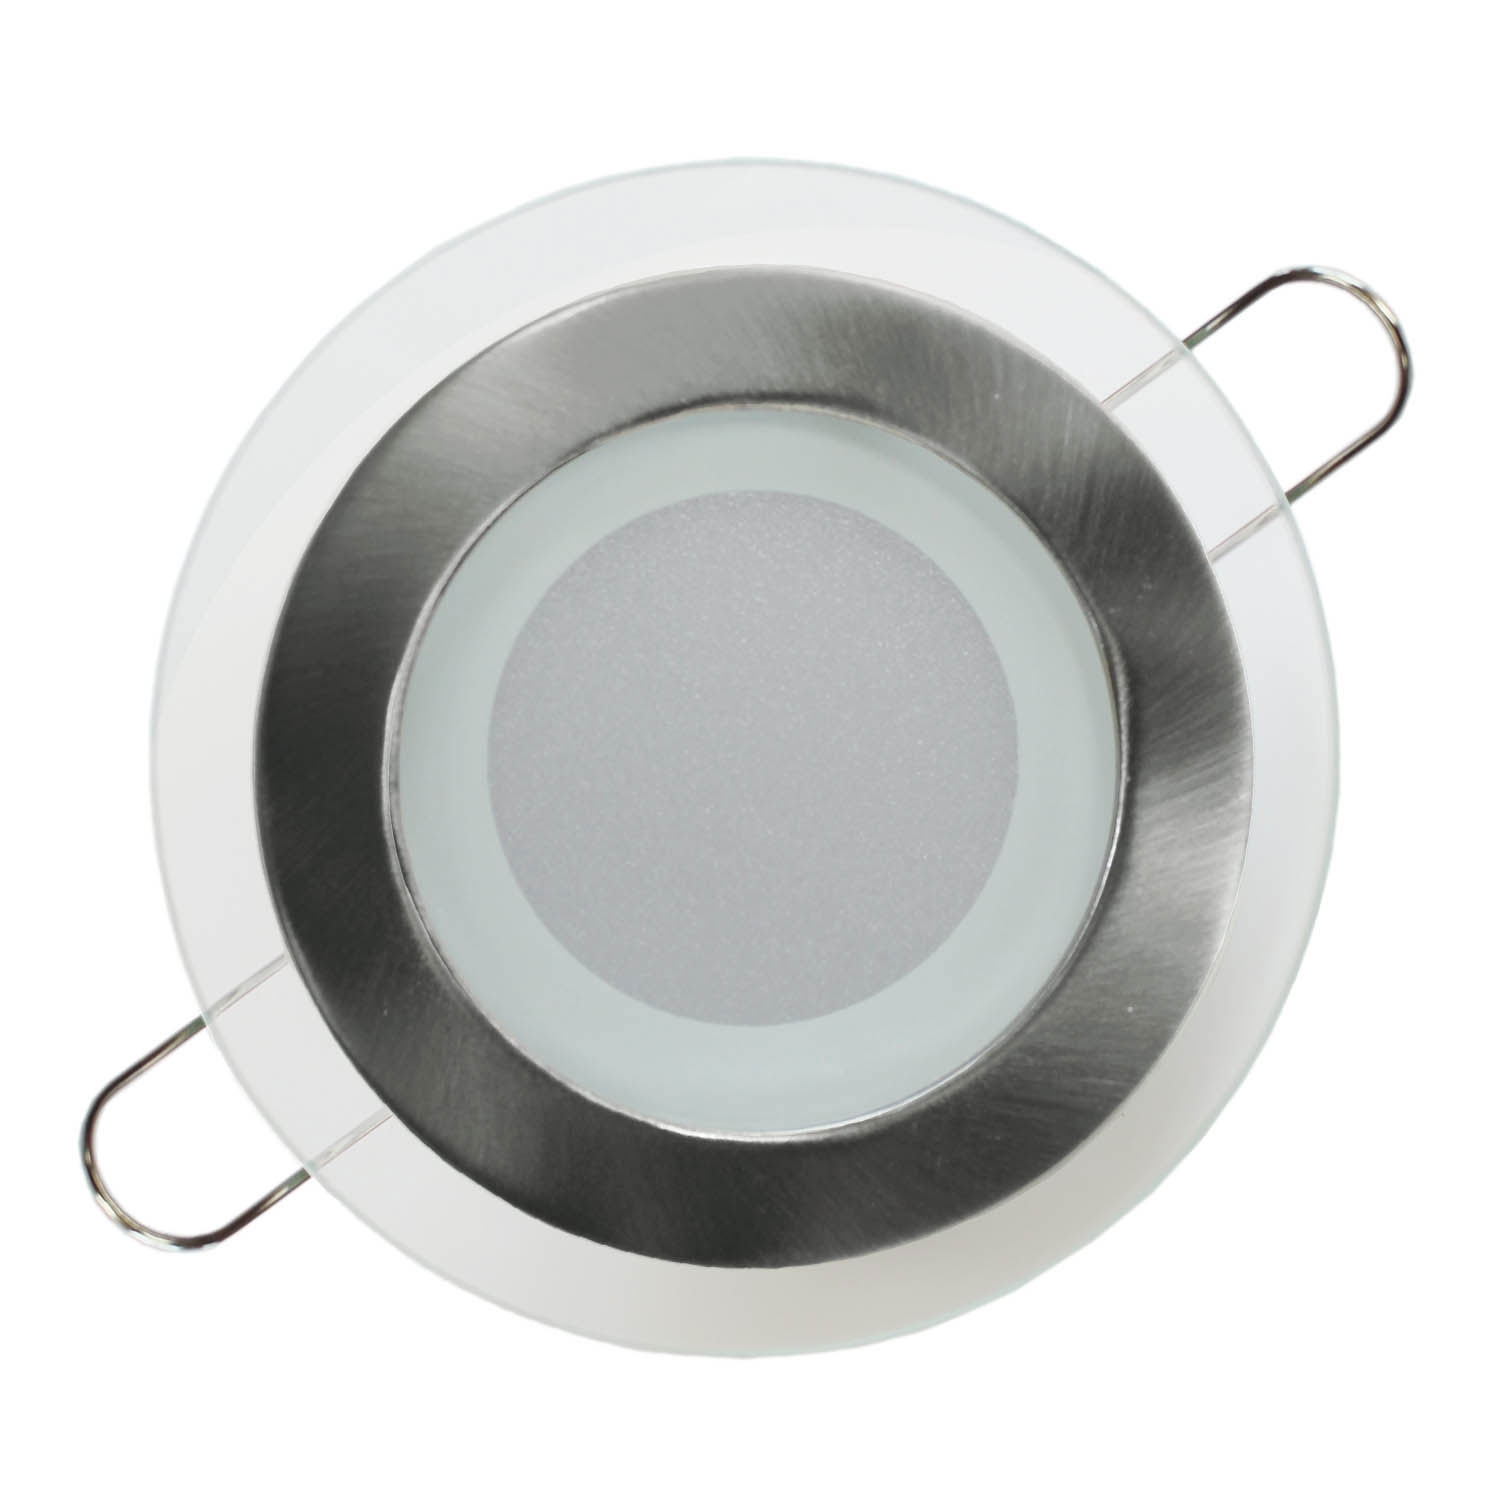 Focos led empotrables para cocina - Downlight cocina led ...